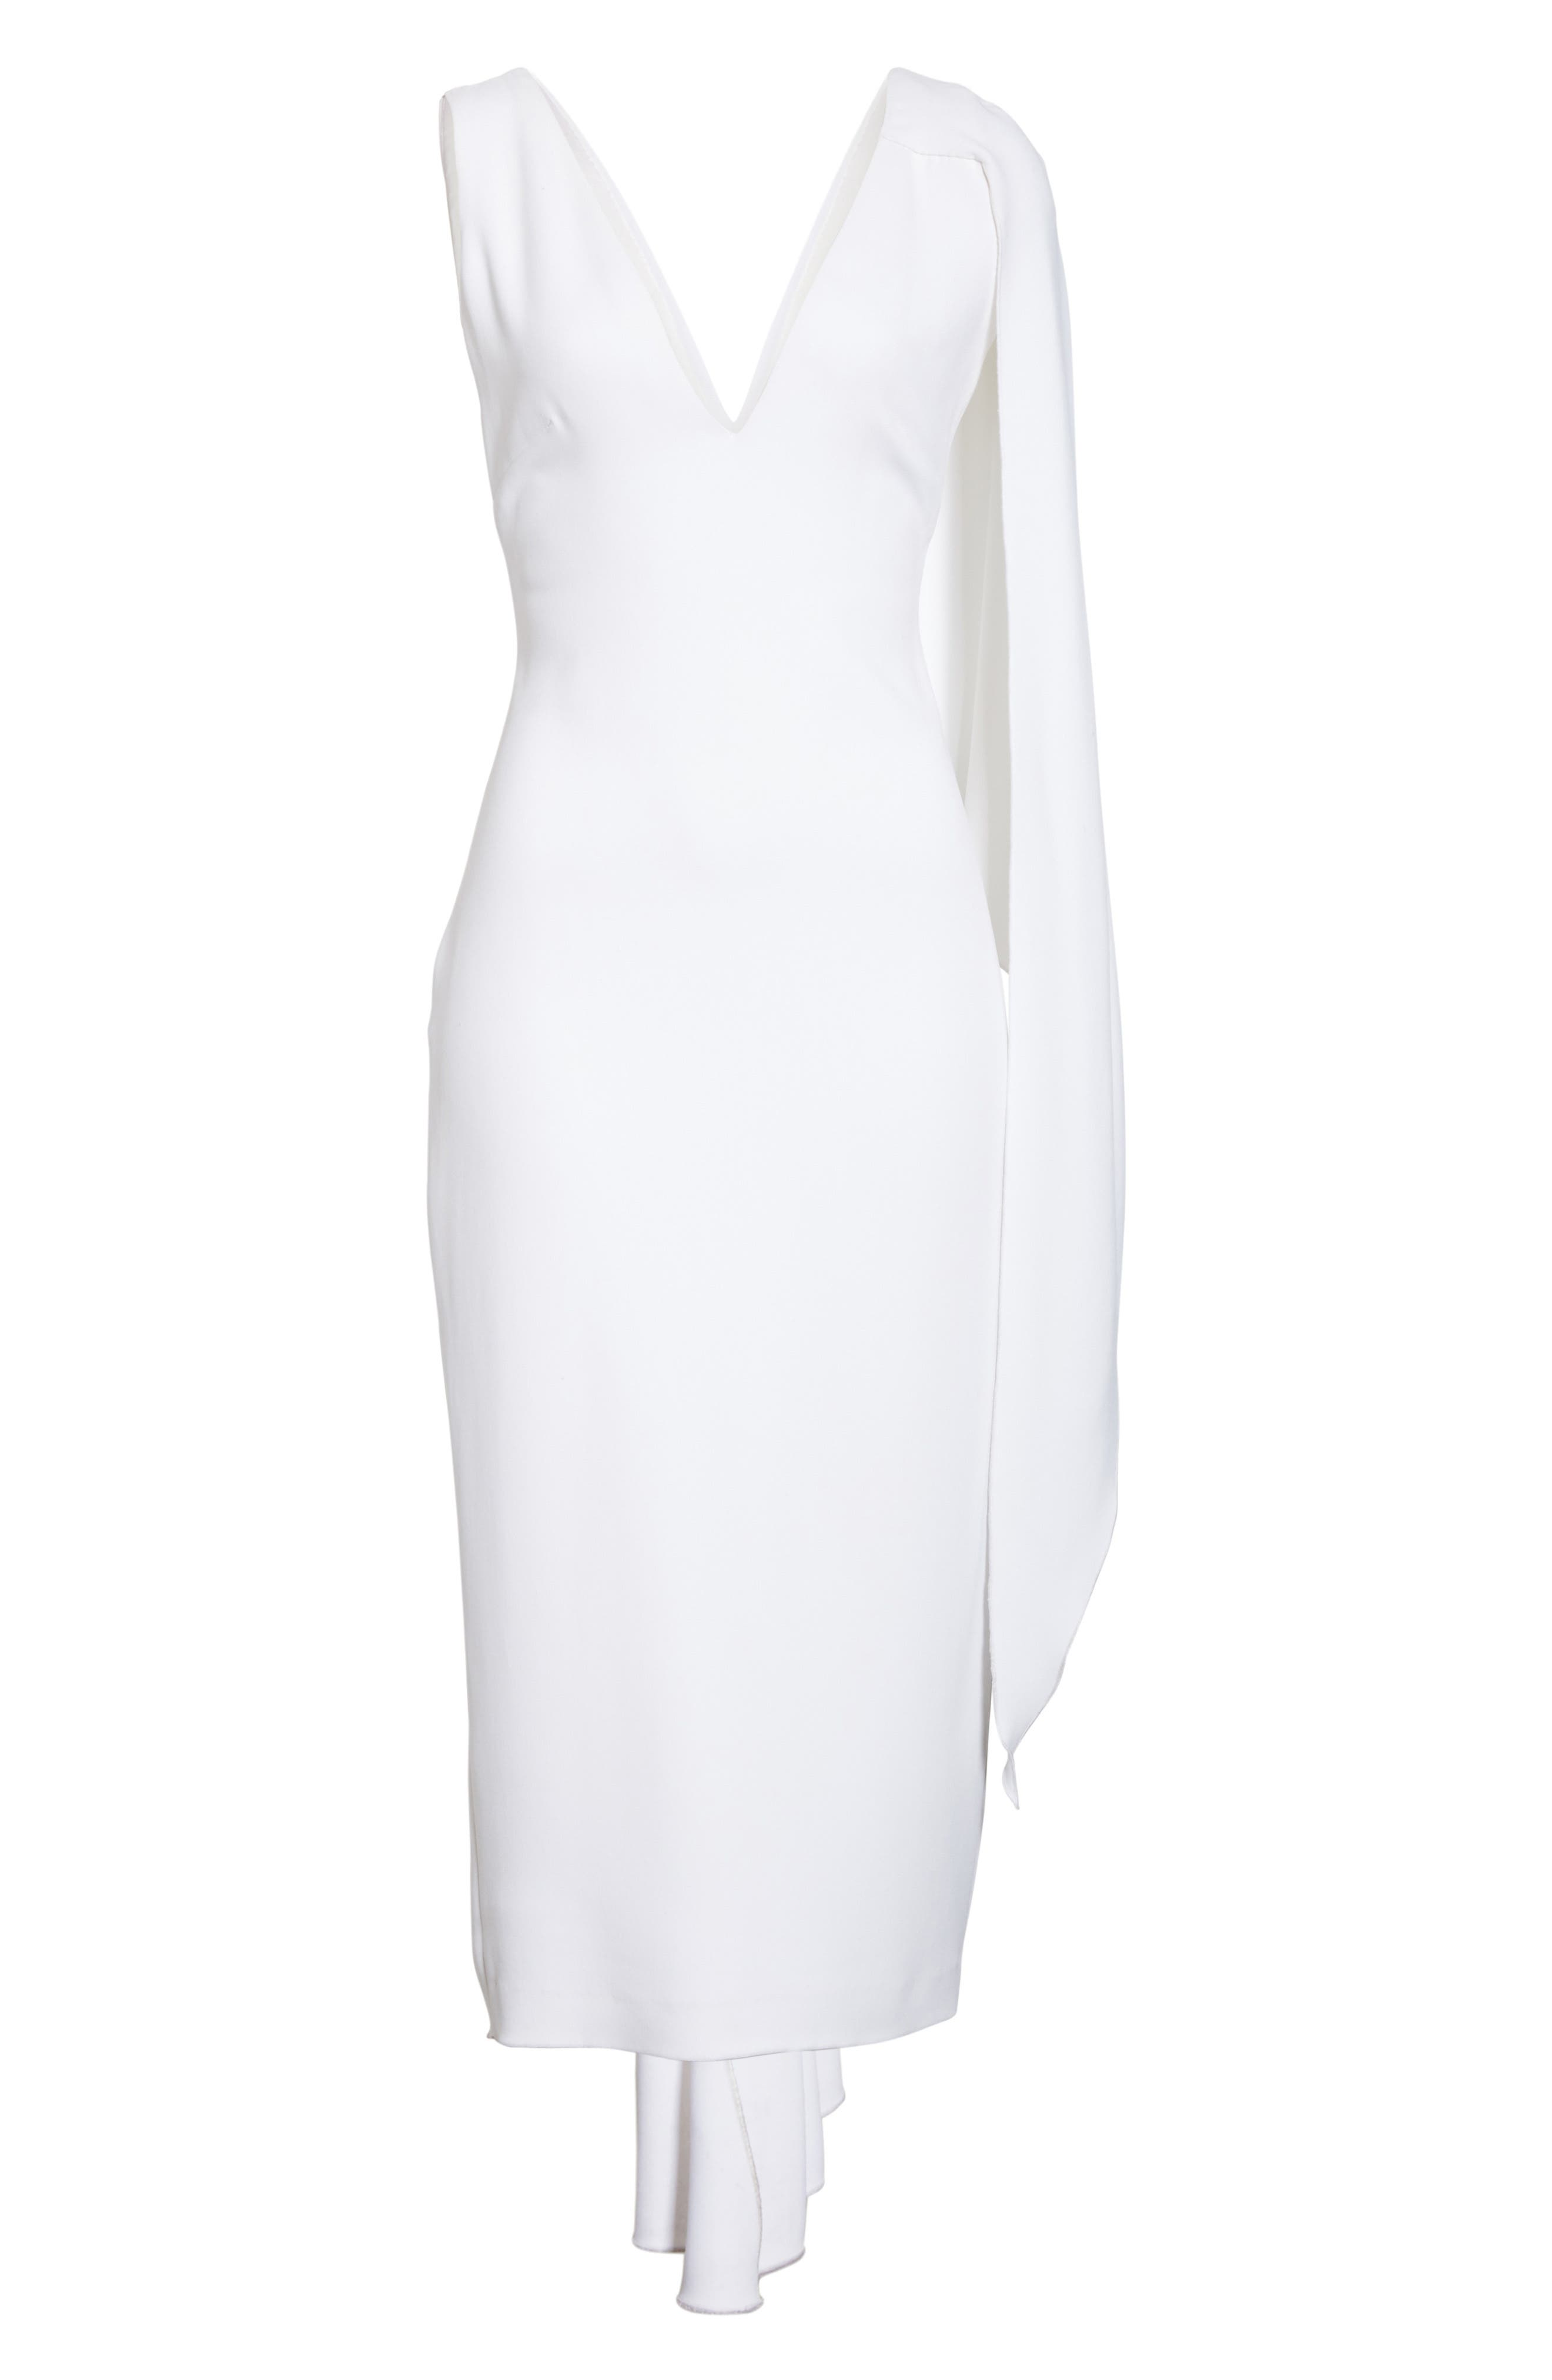 Leta Drape Dress,                             Alternate thumbnail 8, color,                             White